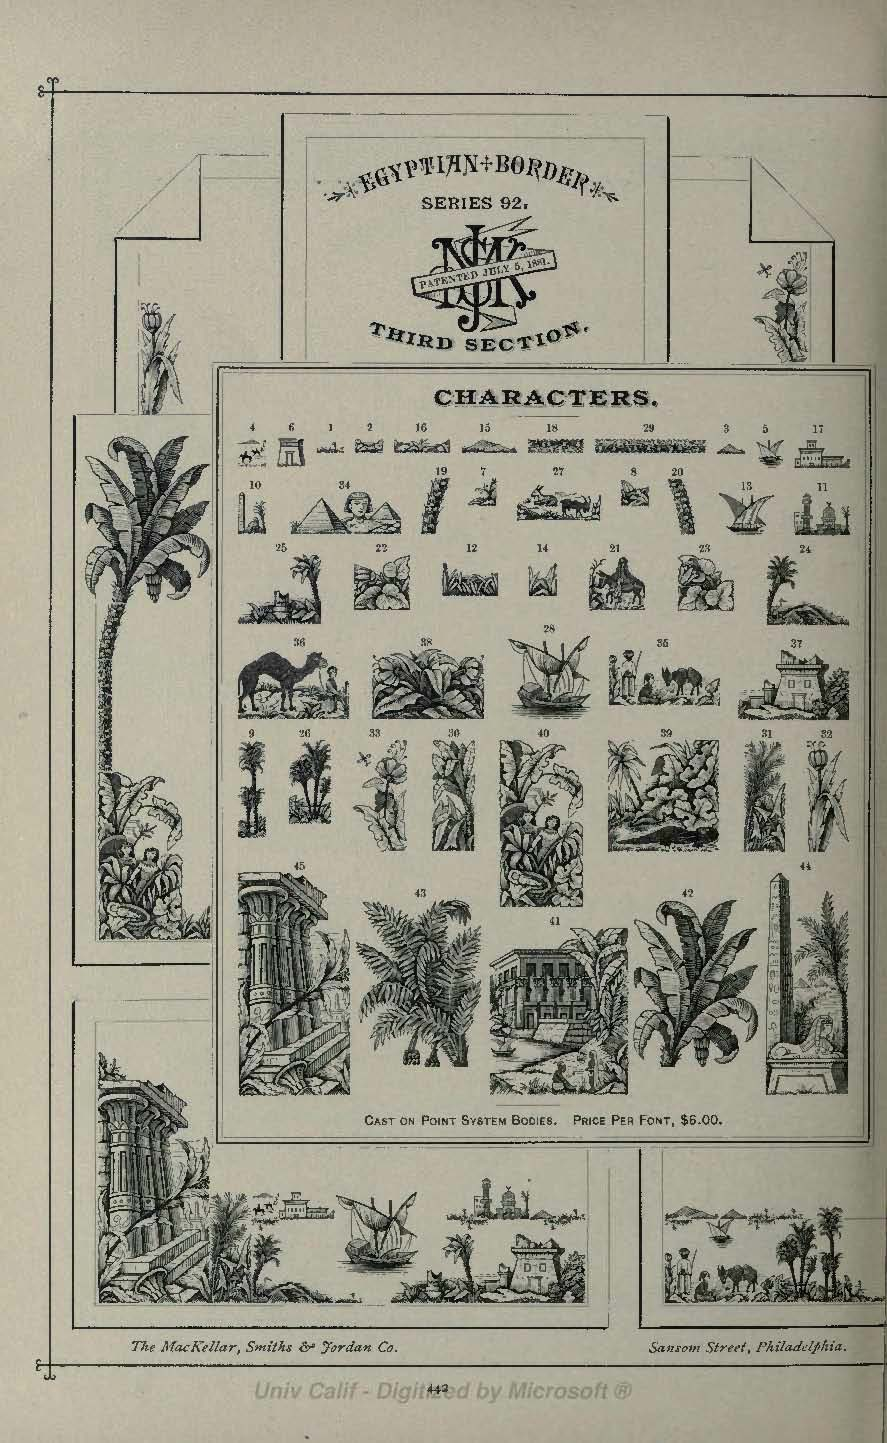 Egyptian Border Third Section from MacKellar Smiths and Jordan 1892 type catalog